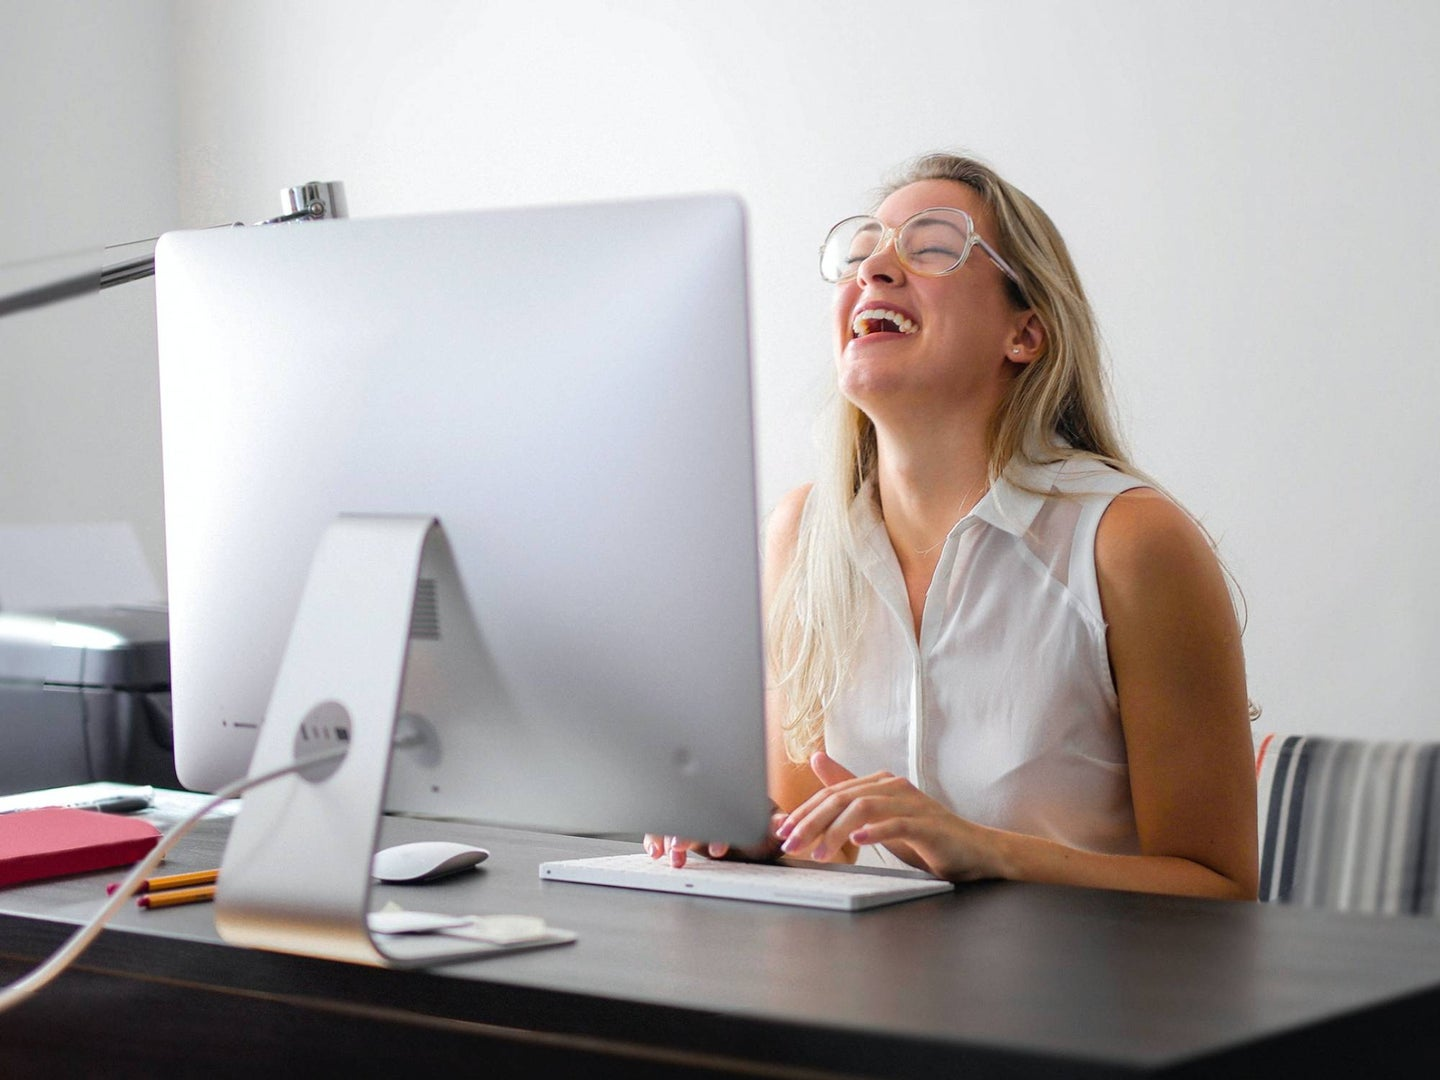 Person laughing at computer